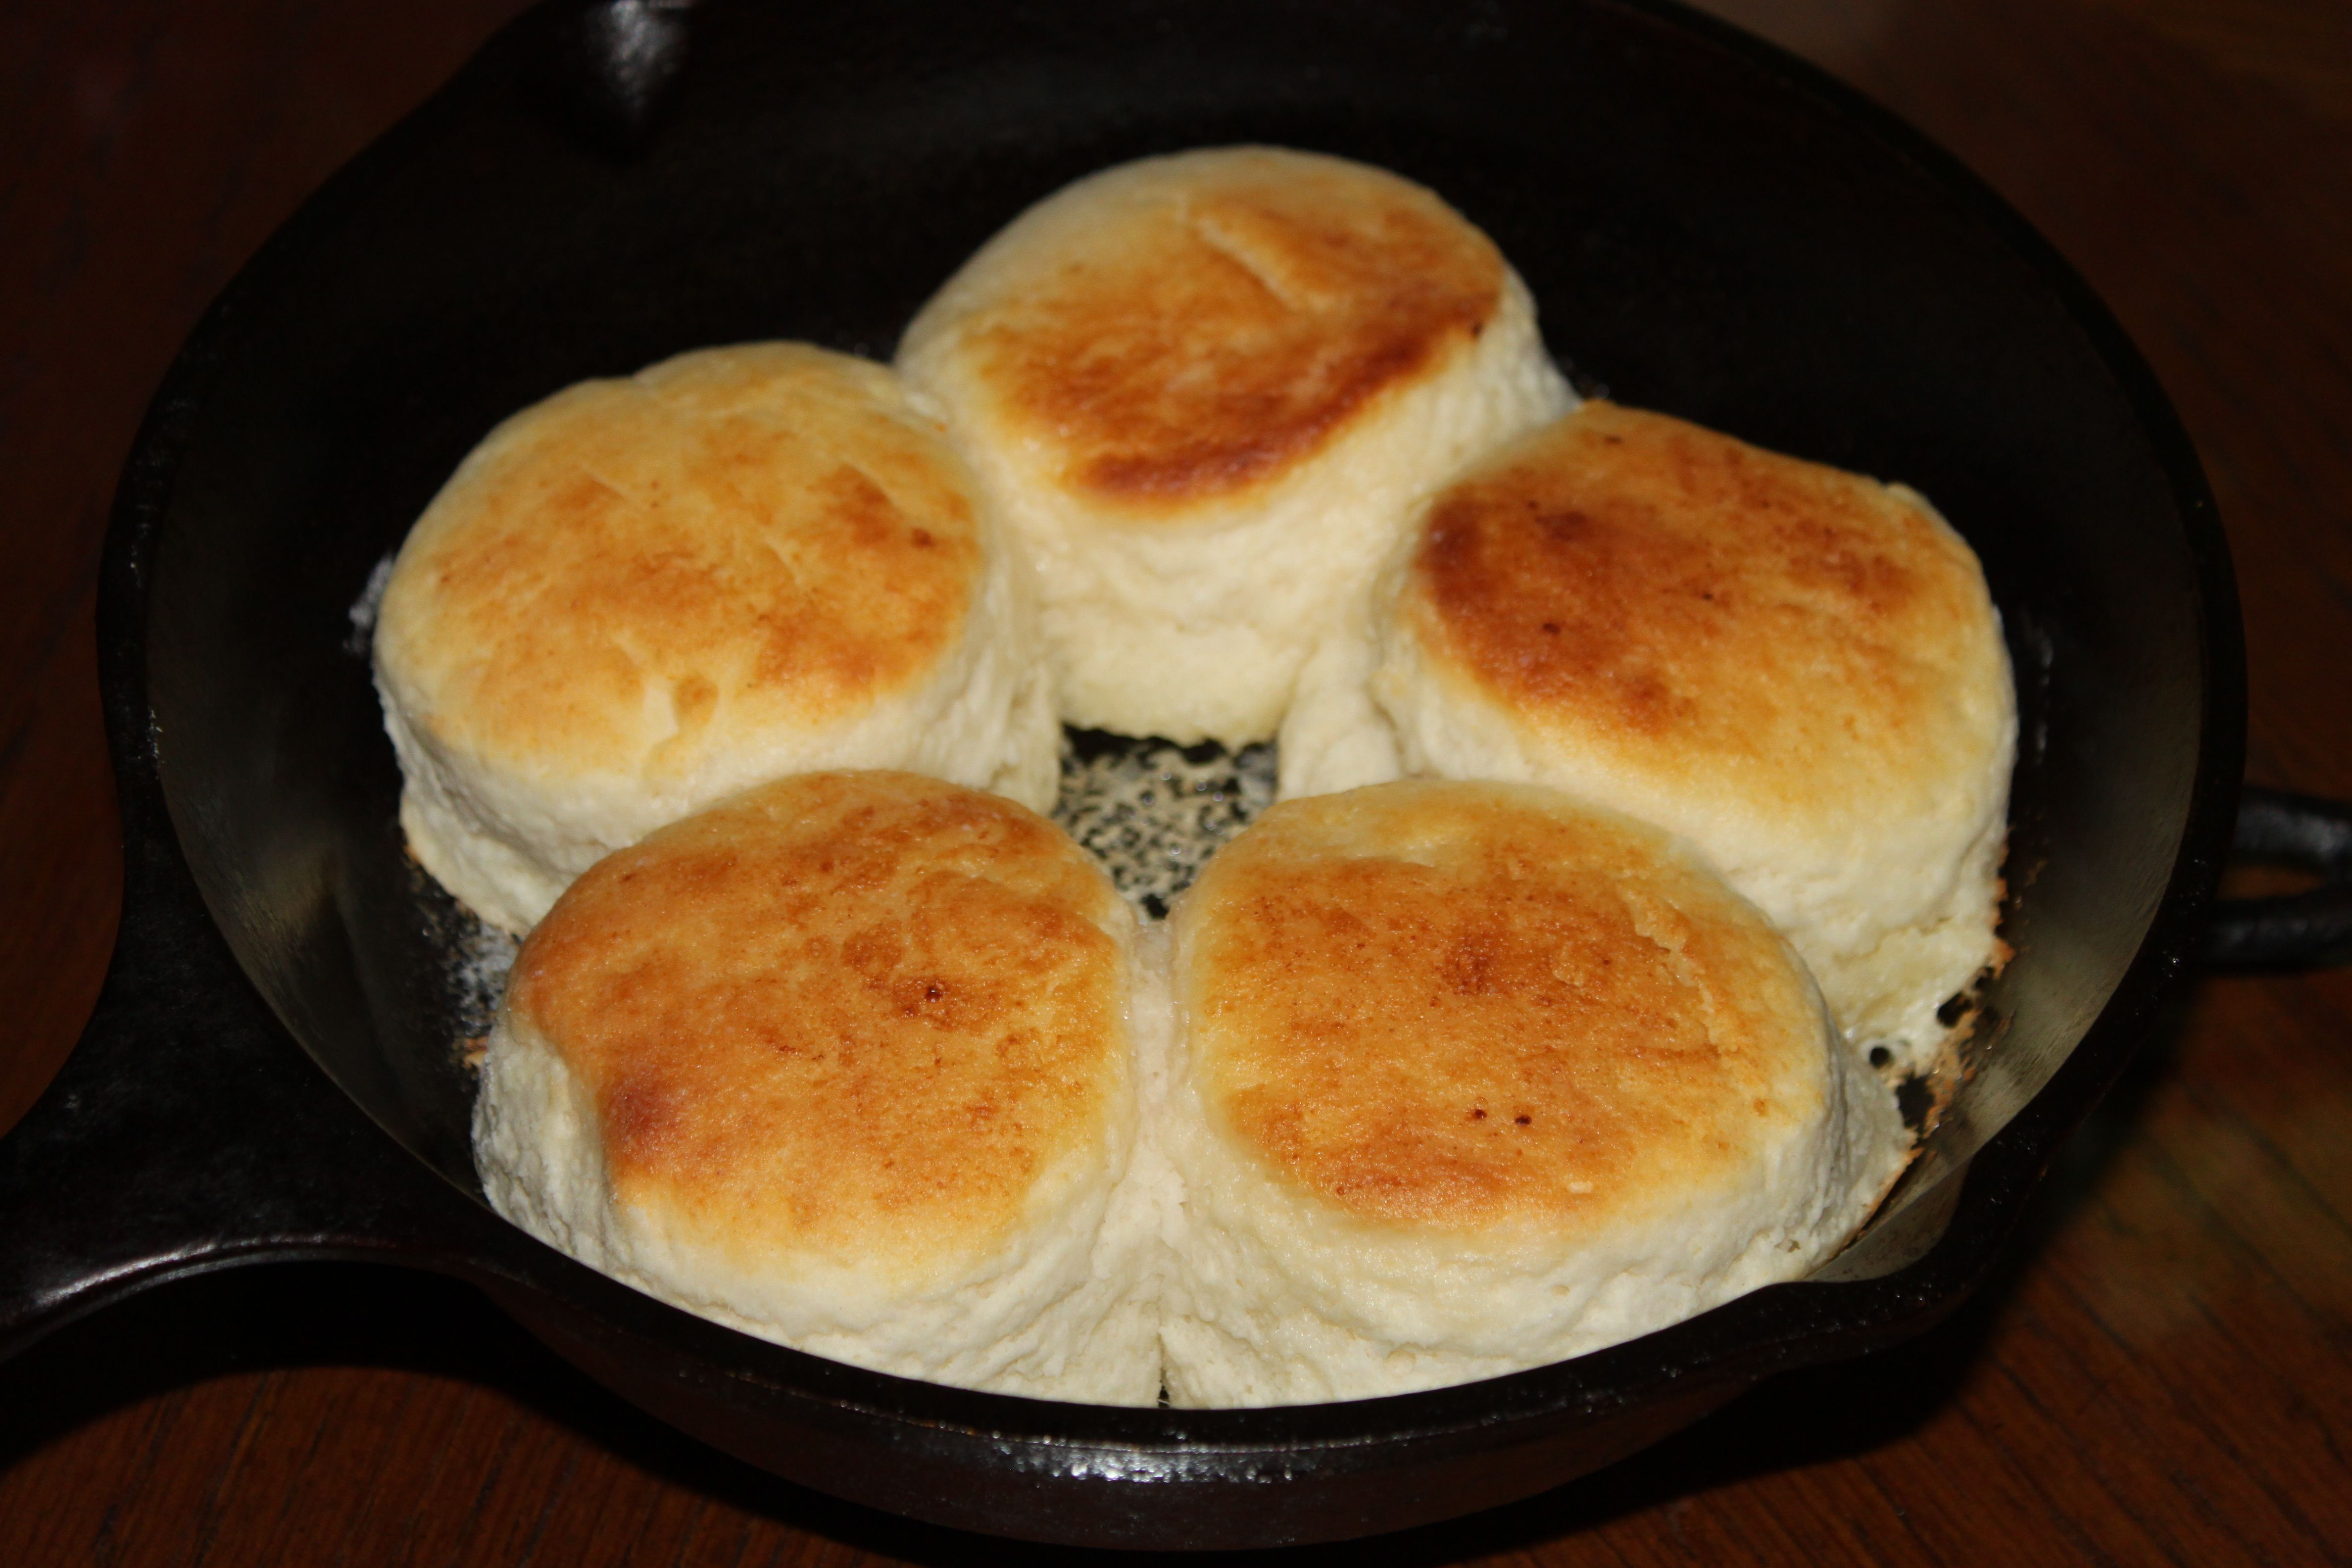 Pin By Cindy Sisson On A Friends Home Cooking O Country Biscuits Cooking Recipes